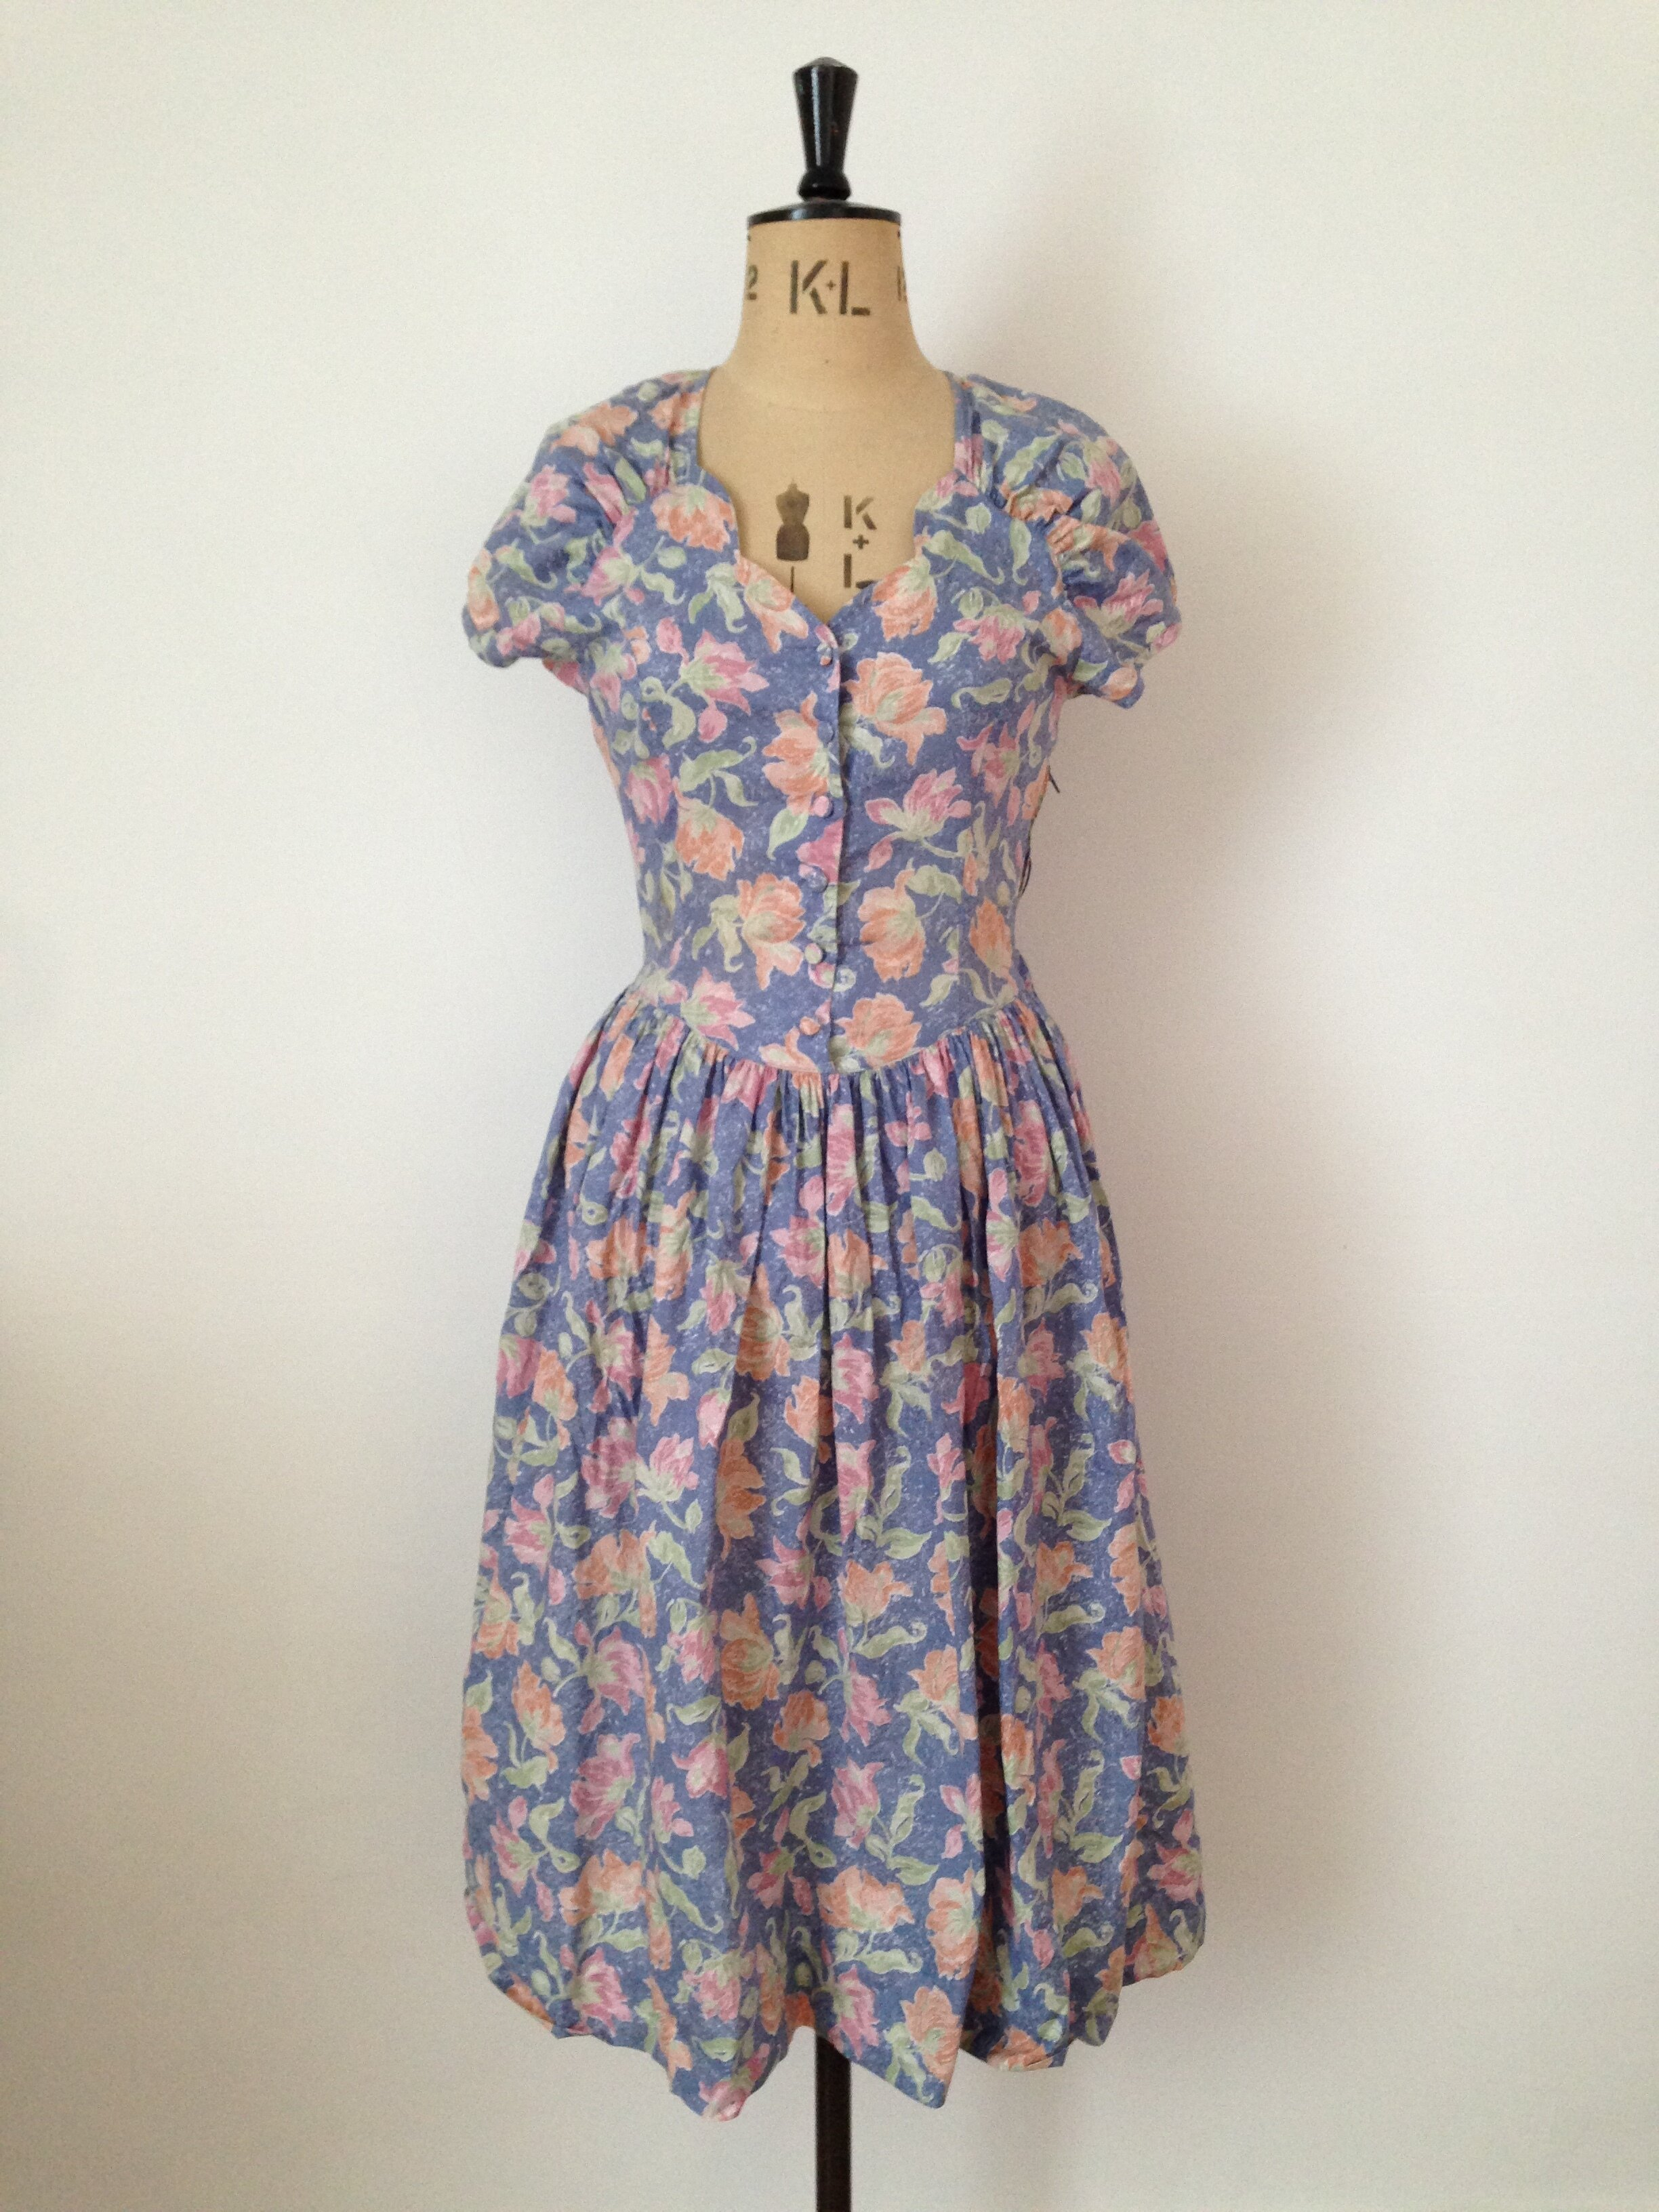 Laura Ashley 90's grunge dress